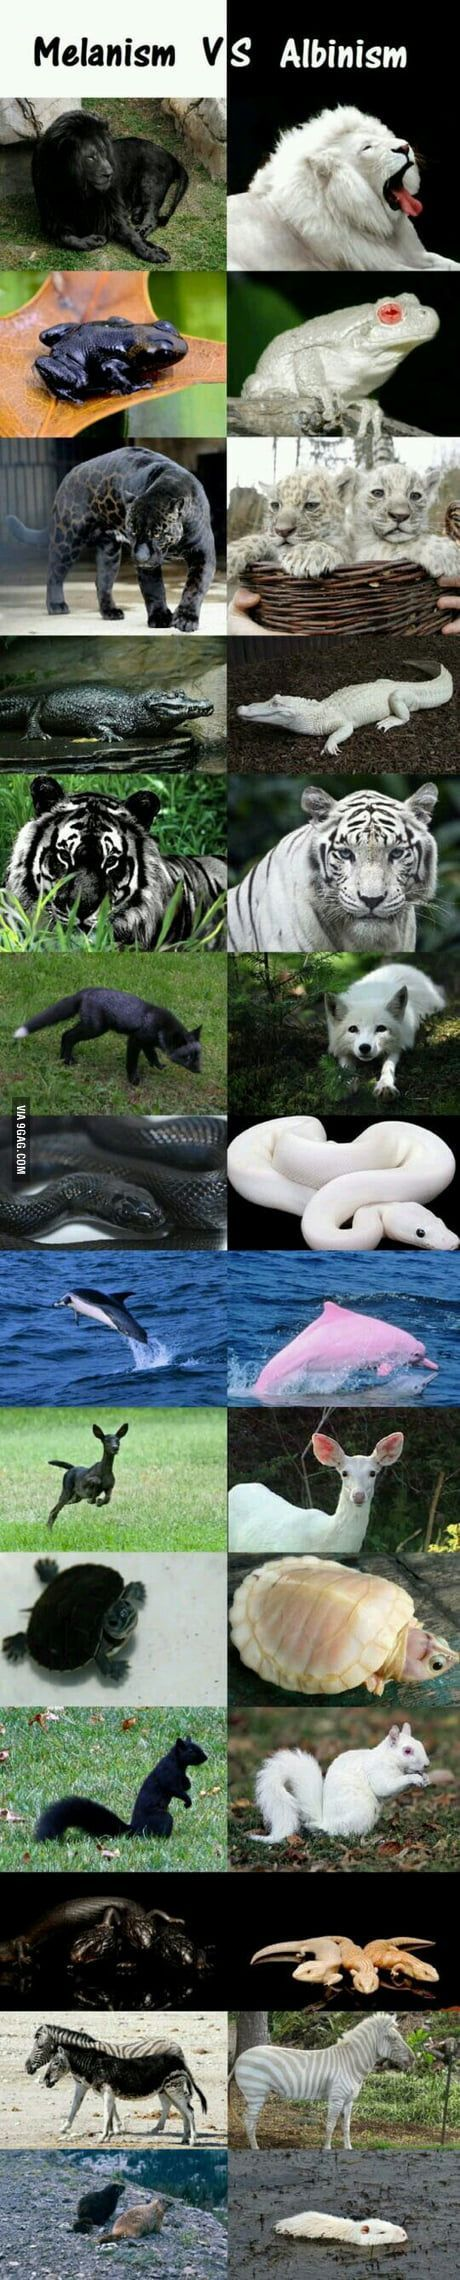 Melanism vs Albinism, thought you guys might like to see this. – Torben